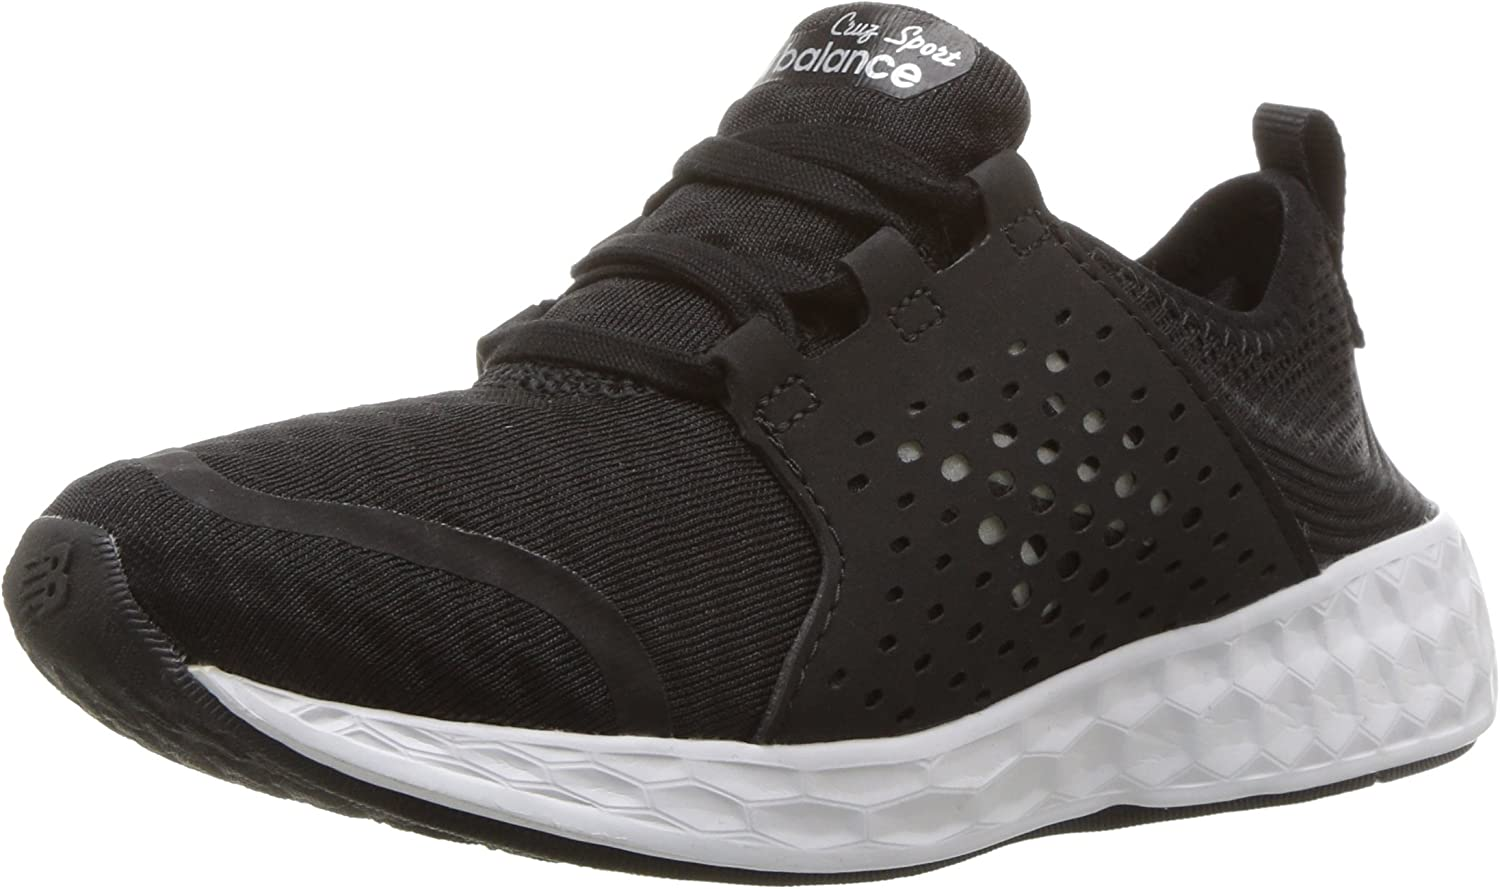 New Balance Unisex Adults' Kjcrzbkg Fitness shoes